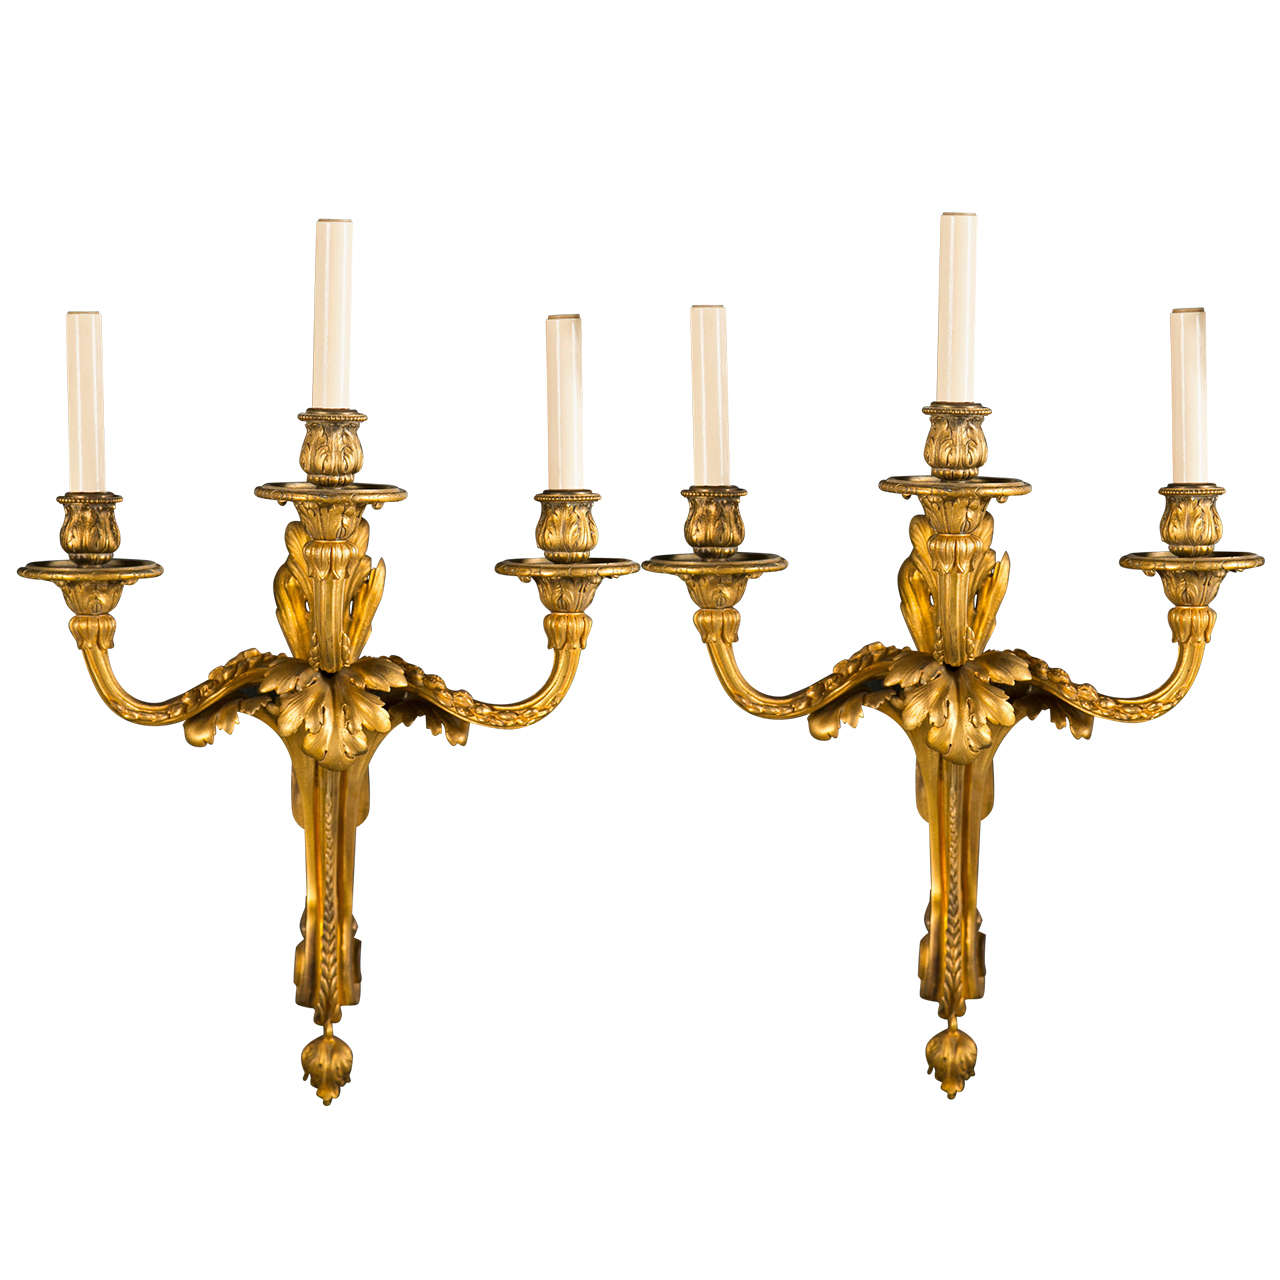 Pair of Caldwell Three Light Sconces